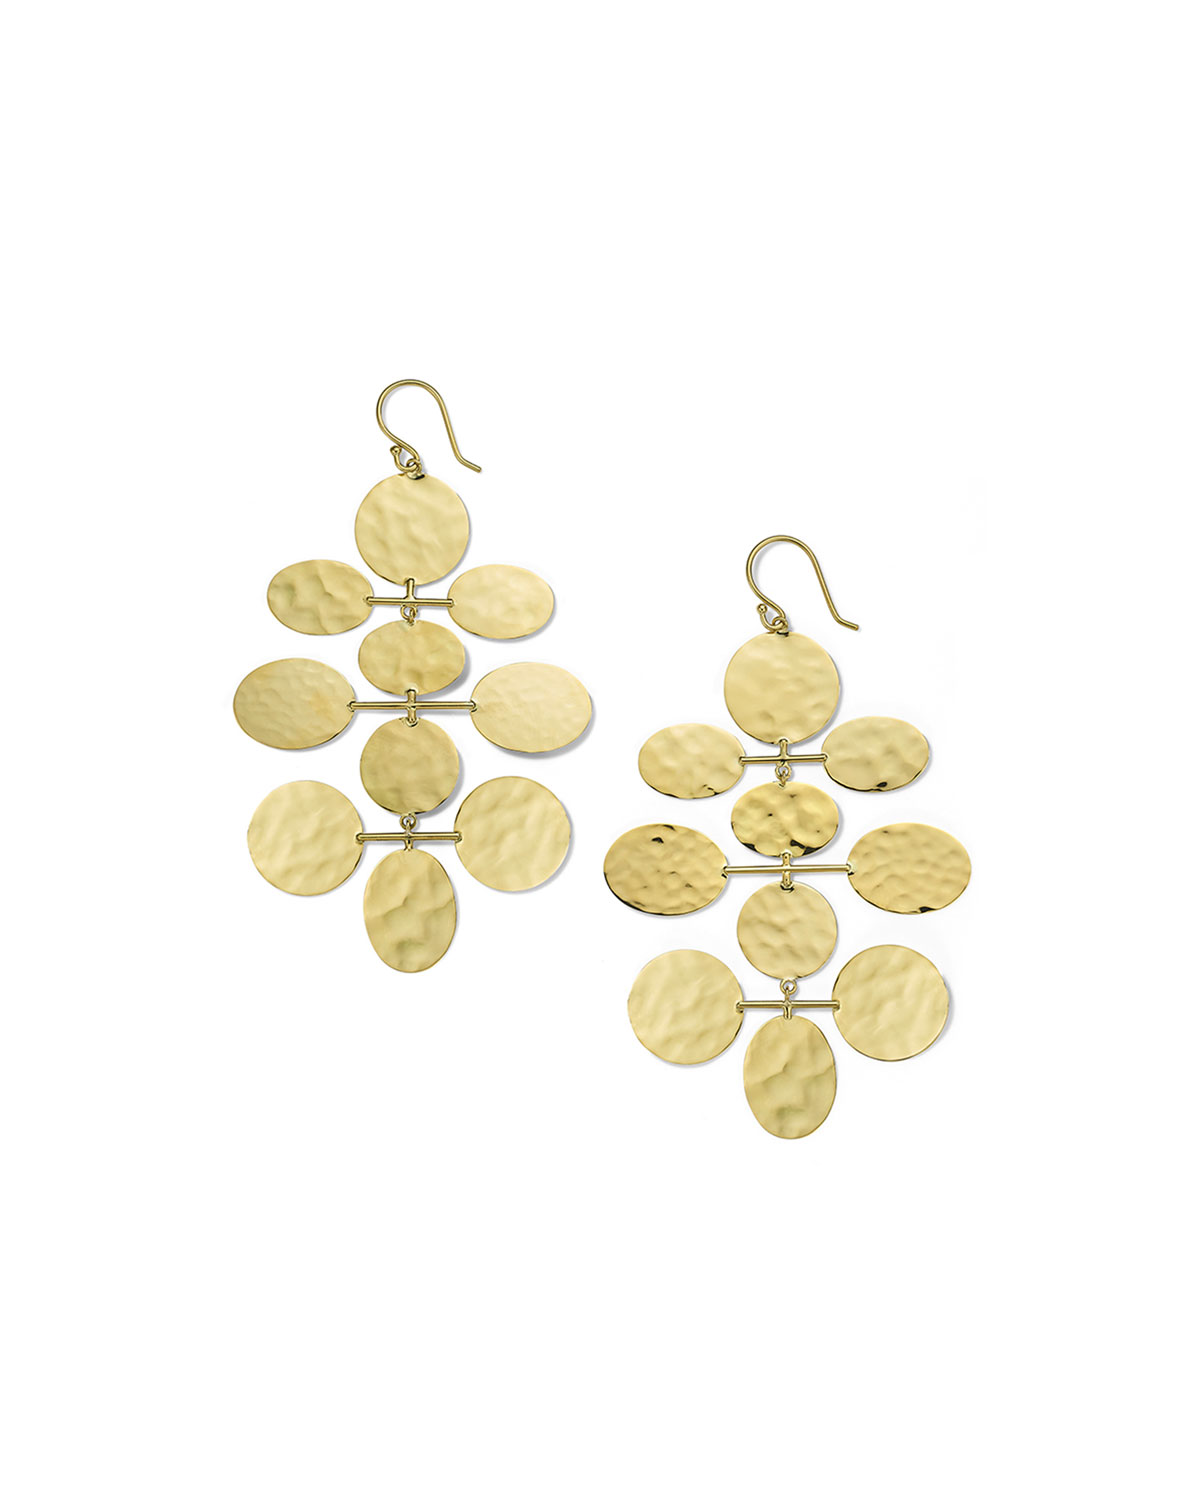 Ippolita Classico Crinkle Hammered Mobile Cascade Earrings in 18K Gold